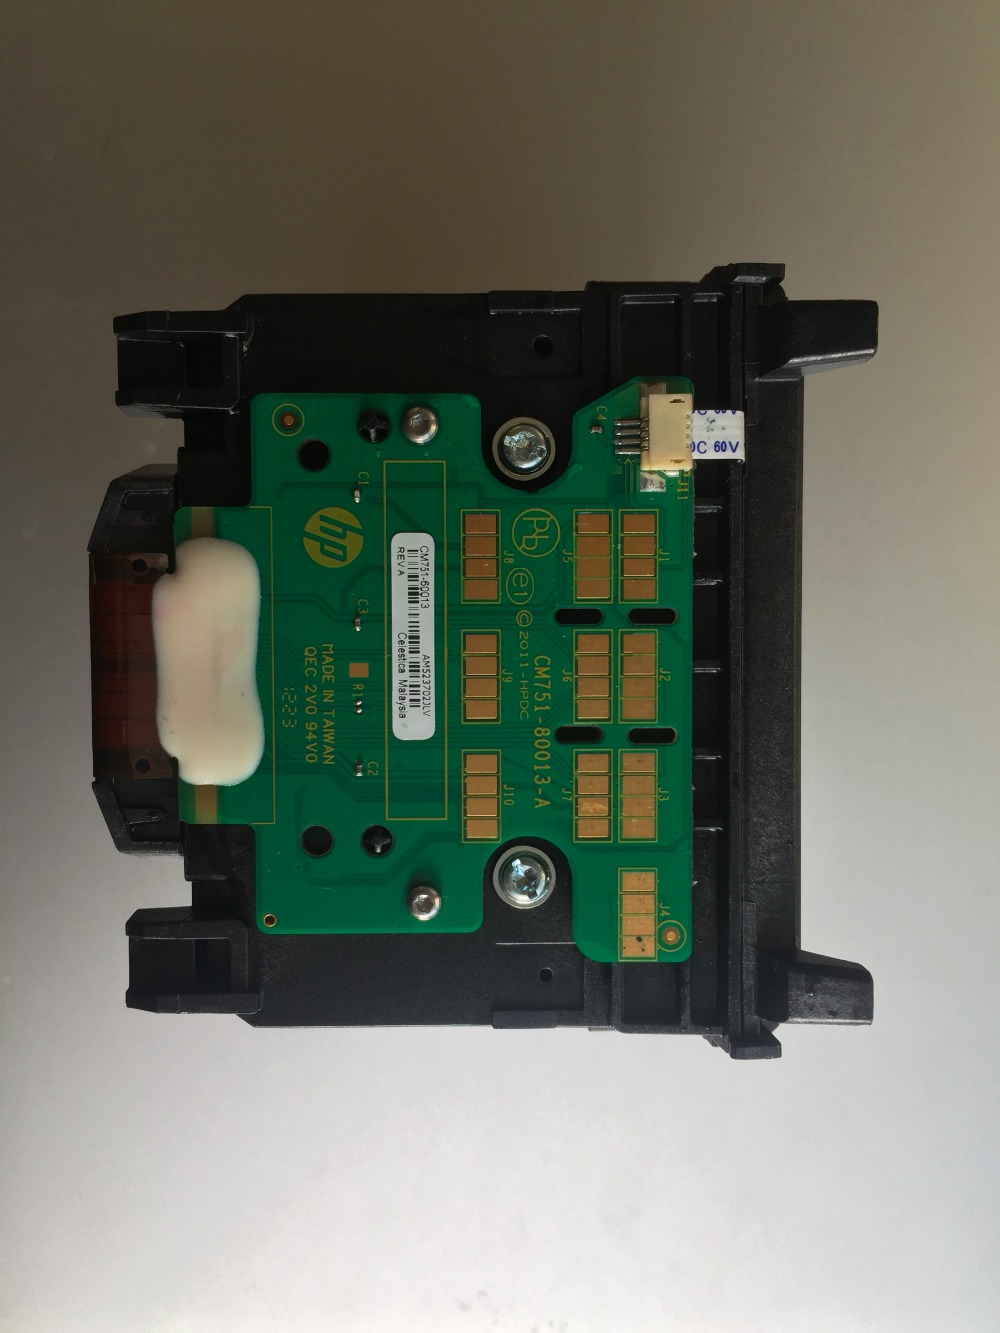 PRINT HEAD For HP Printers 950 951 For HP Pro OFFICEJET 8100 Printhead For Hp 8600 Printing Head For Hp 8600 Printerhead Printer